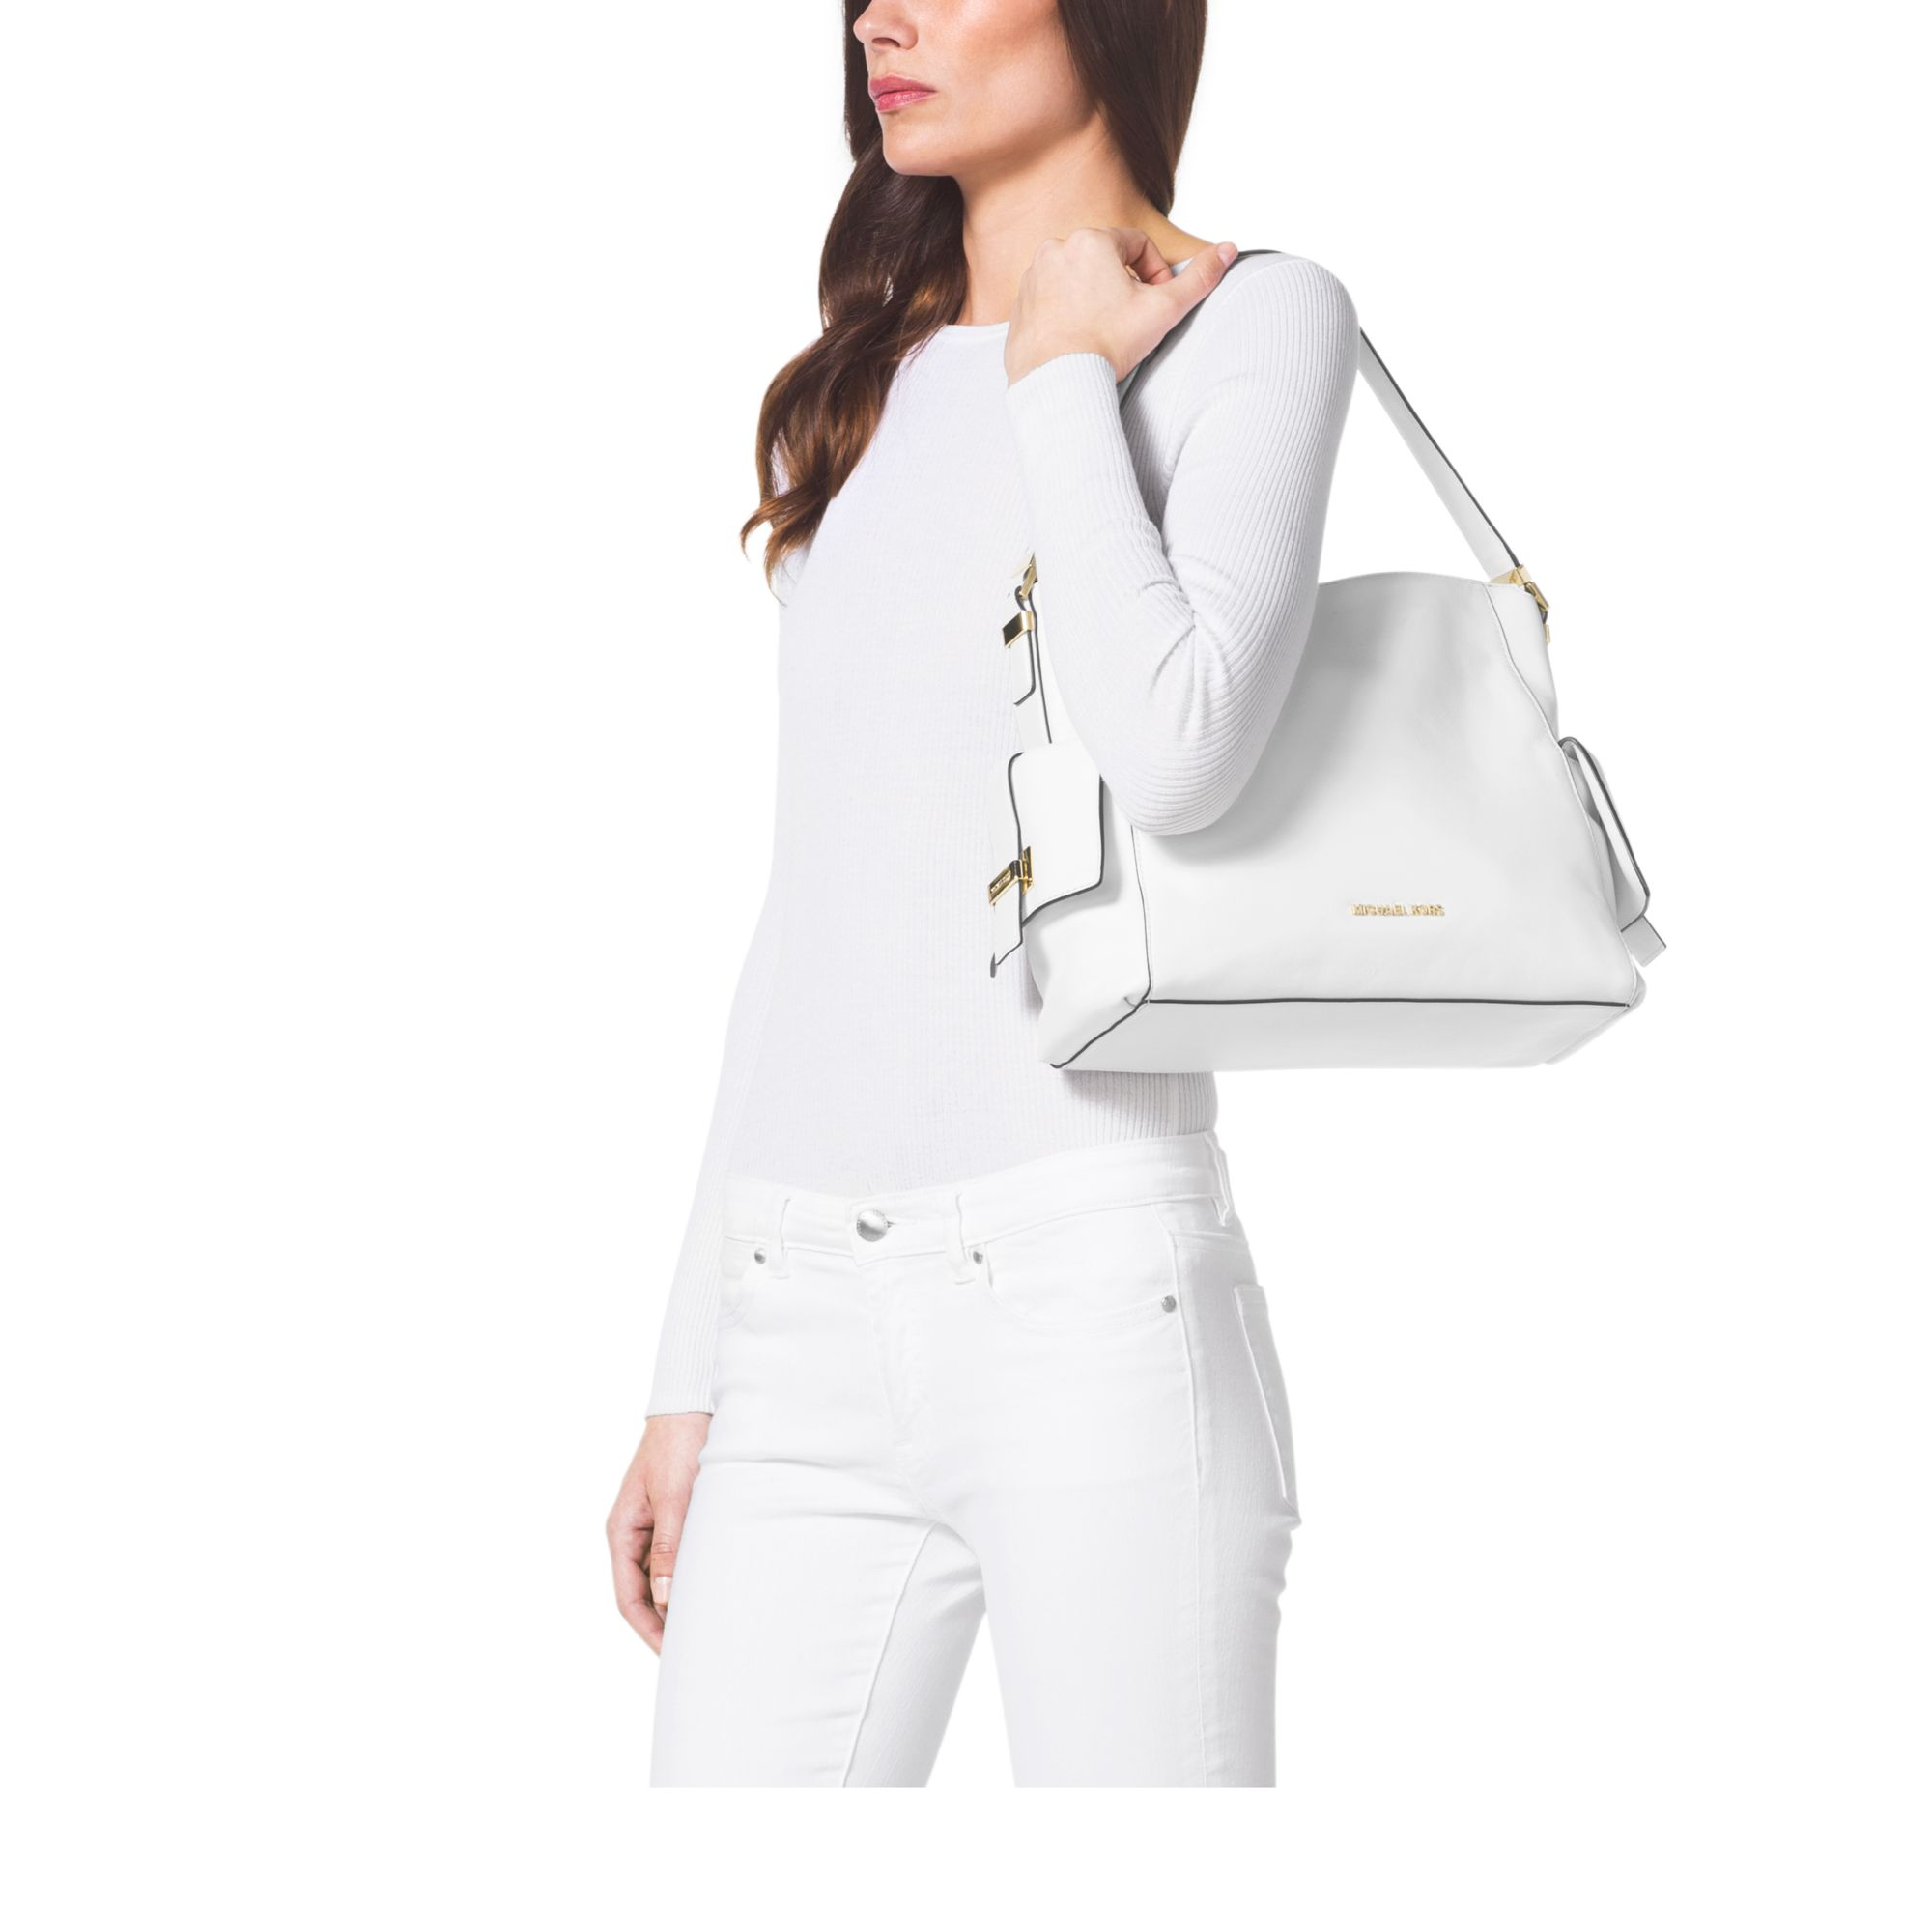 775f41687063 Michael Kors Marly Large Leather Shoulder Bag in White - Lyst